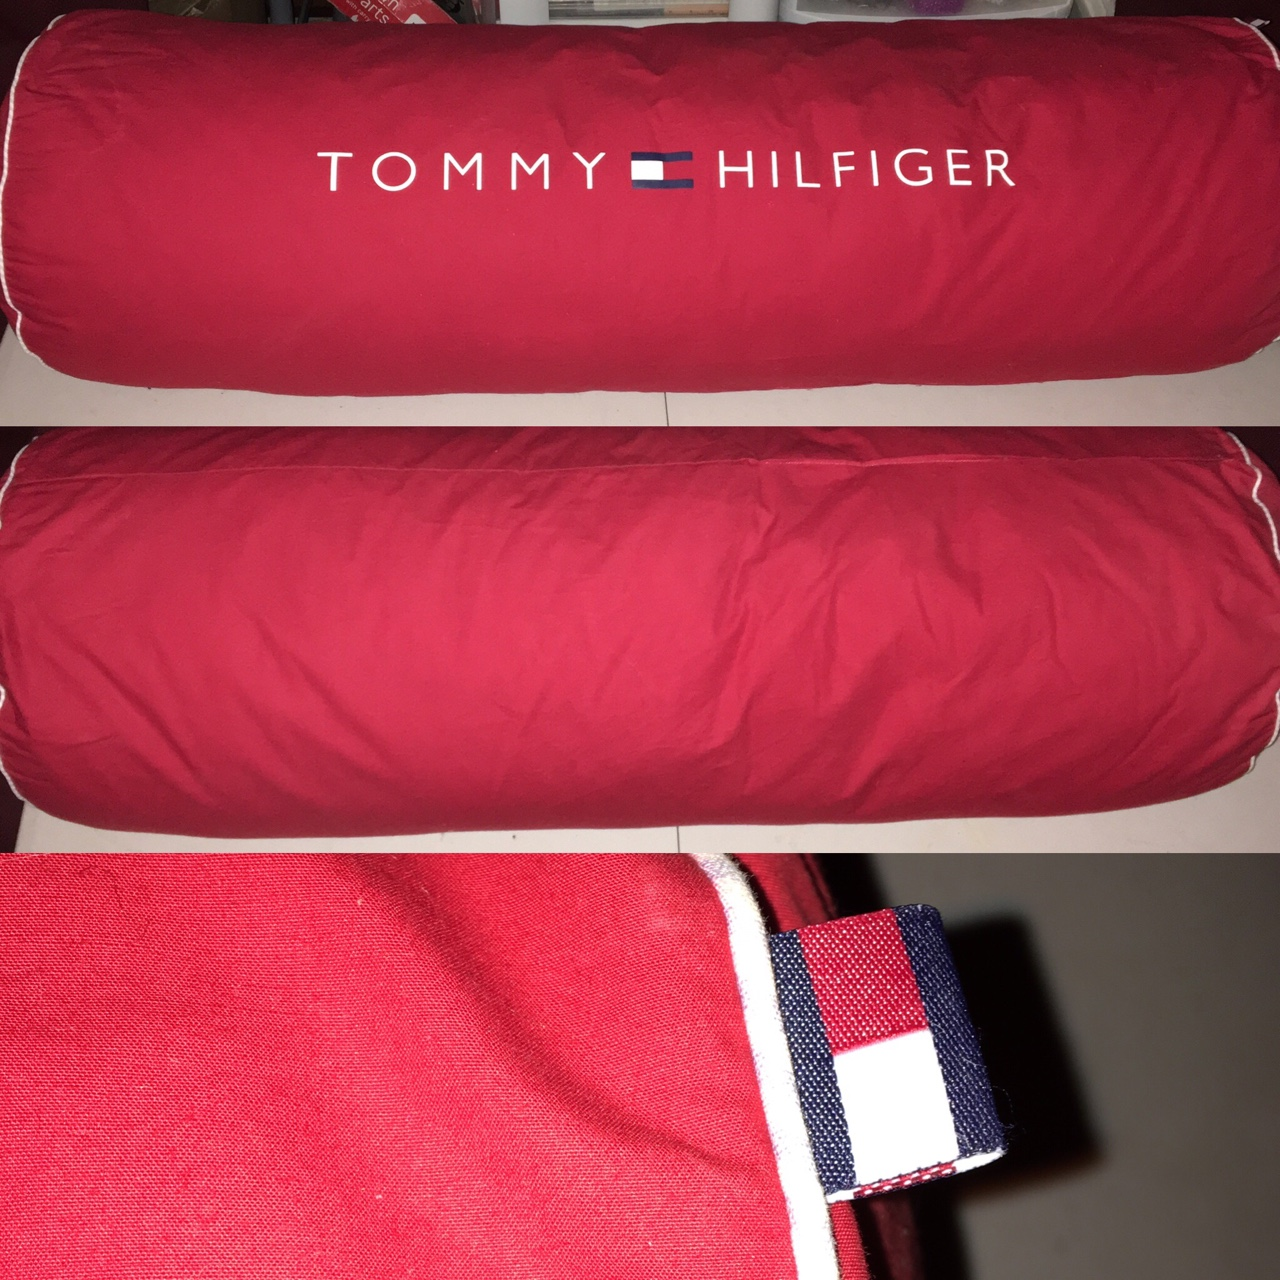 Tommy Hilfiger Spell Out Decorative Body Pillow Depop